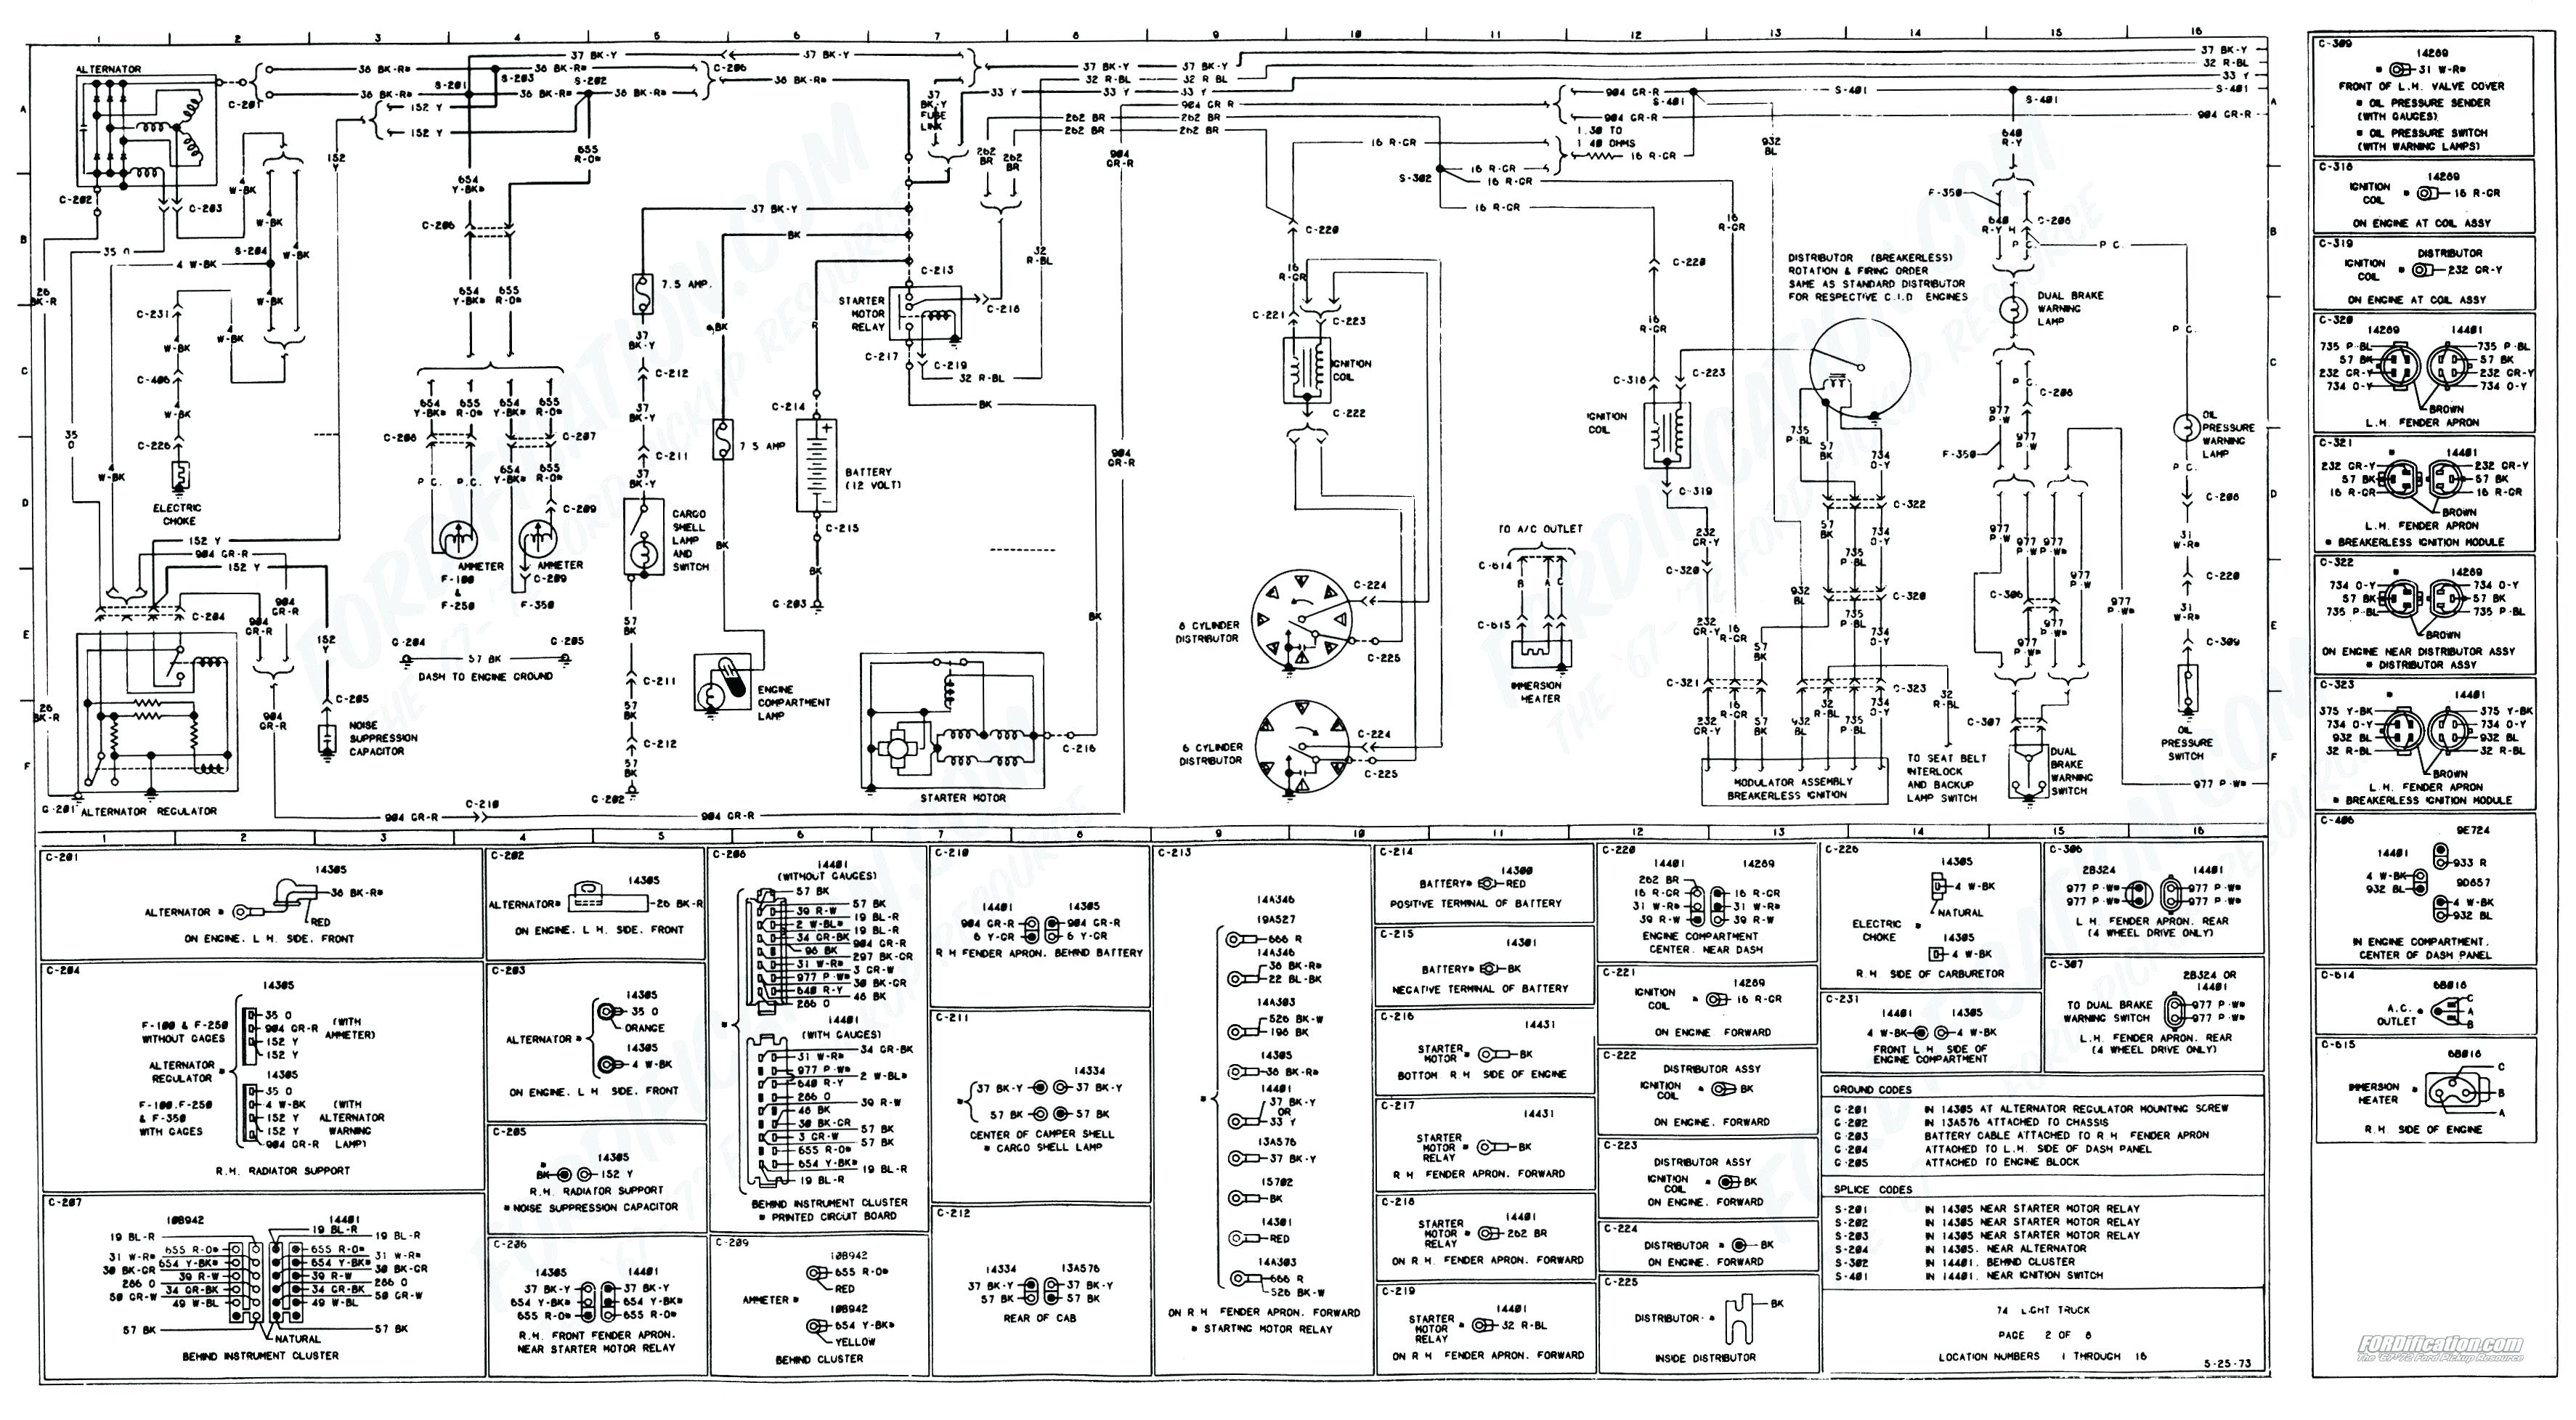 ford f650 wiring diagram gallery rh wholefoodsonabudget com